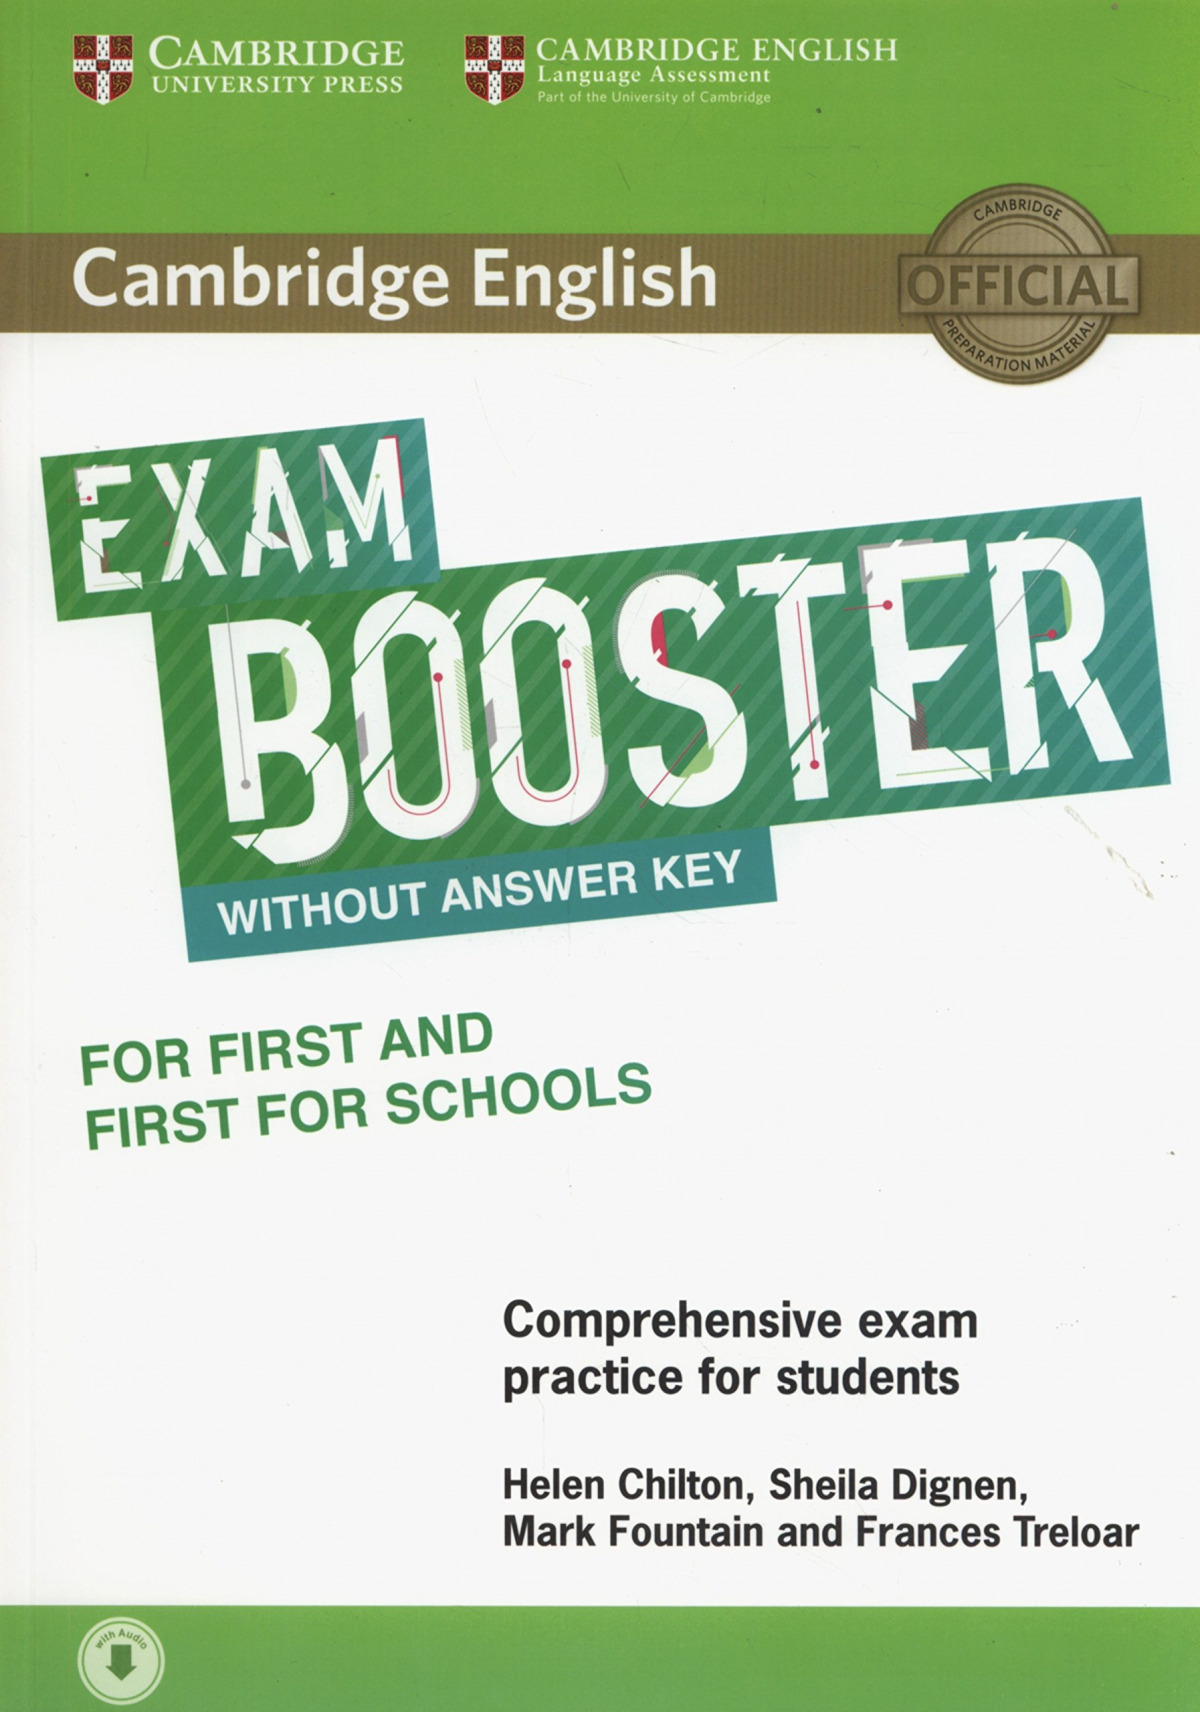 (17).CAMB.ENGLISH EXAM BOOSTER FOR FIRST AND FIRST SCHOOL